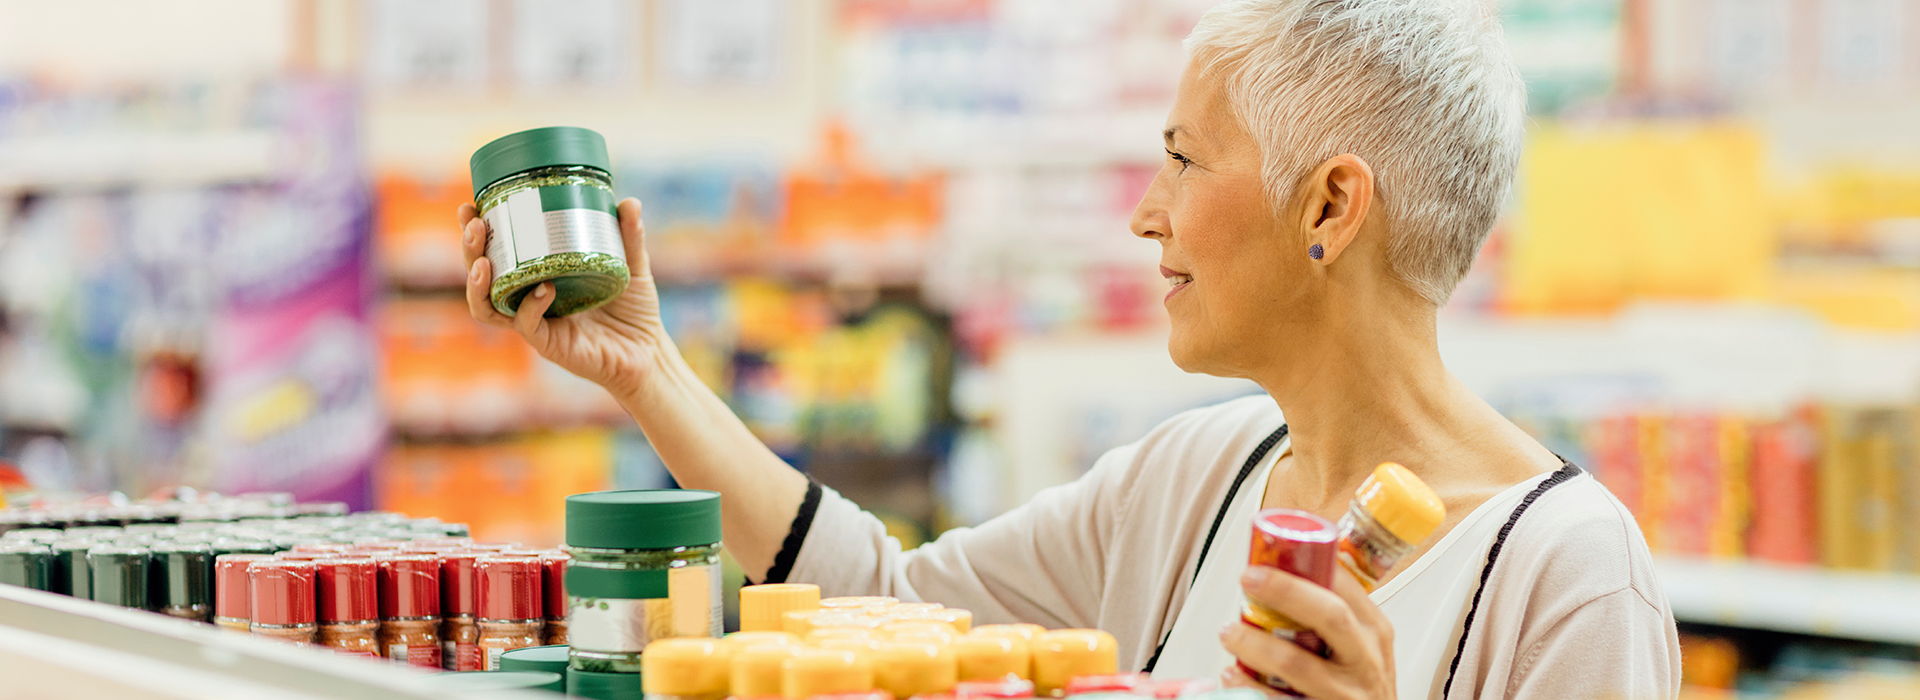 Consumer examining prime label on product in retail store